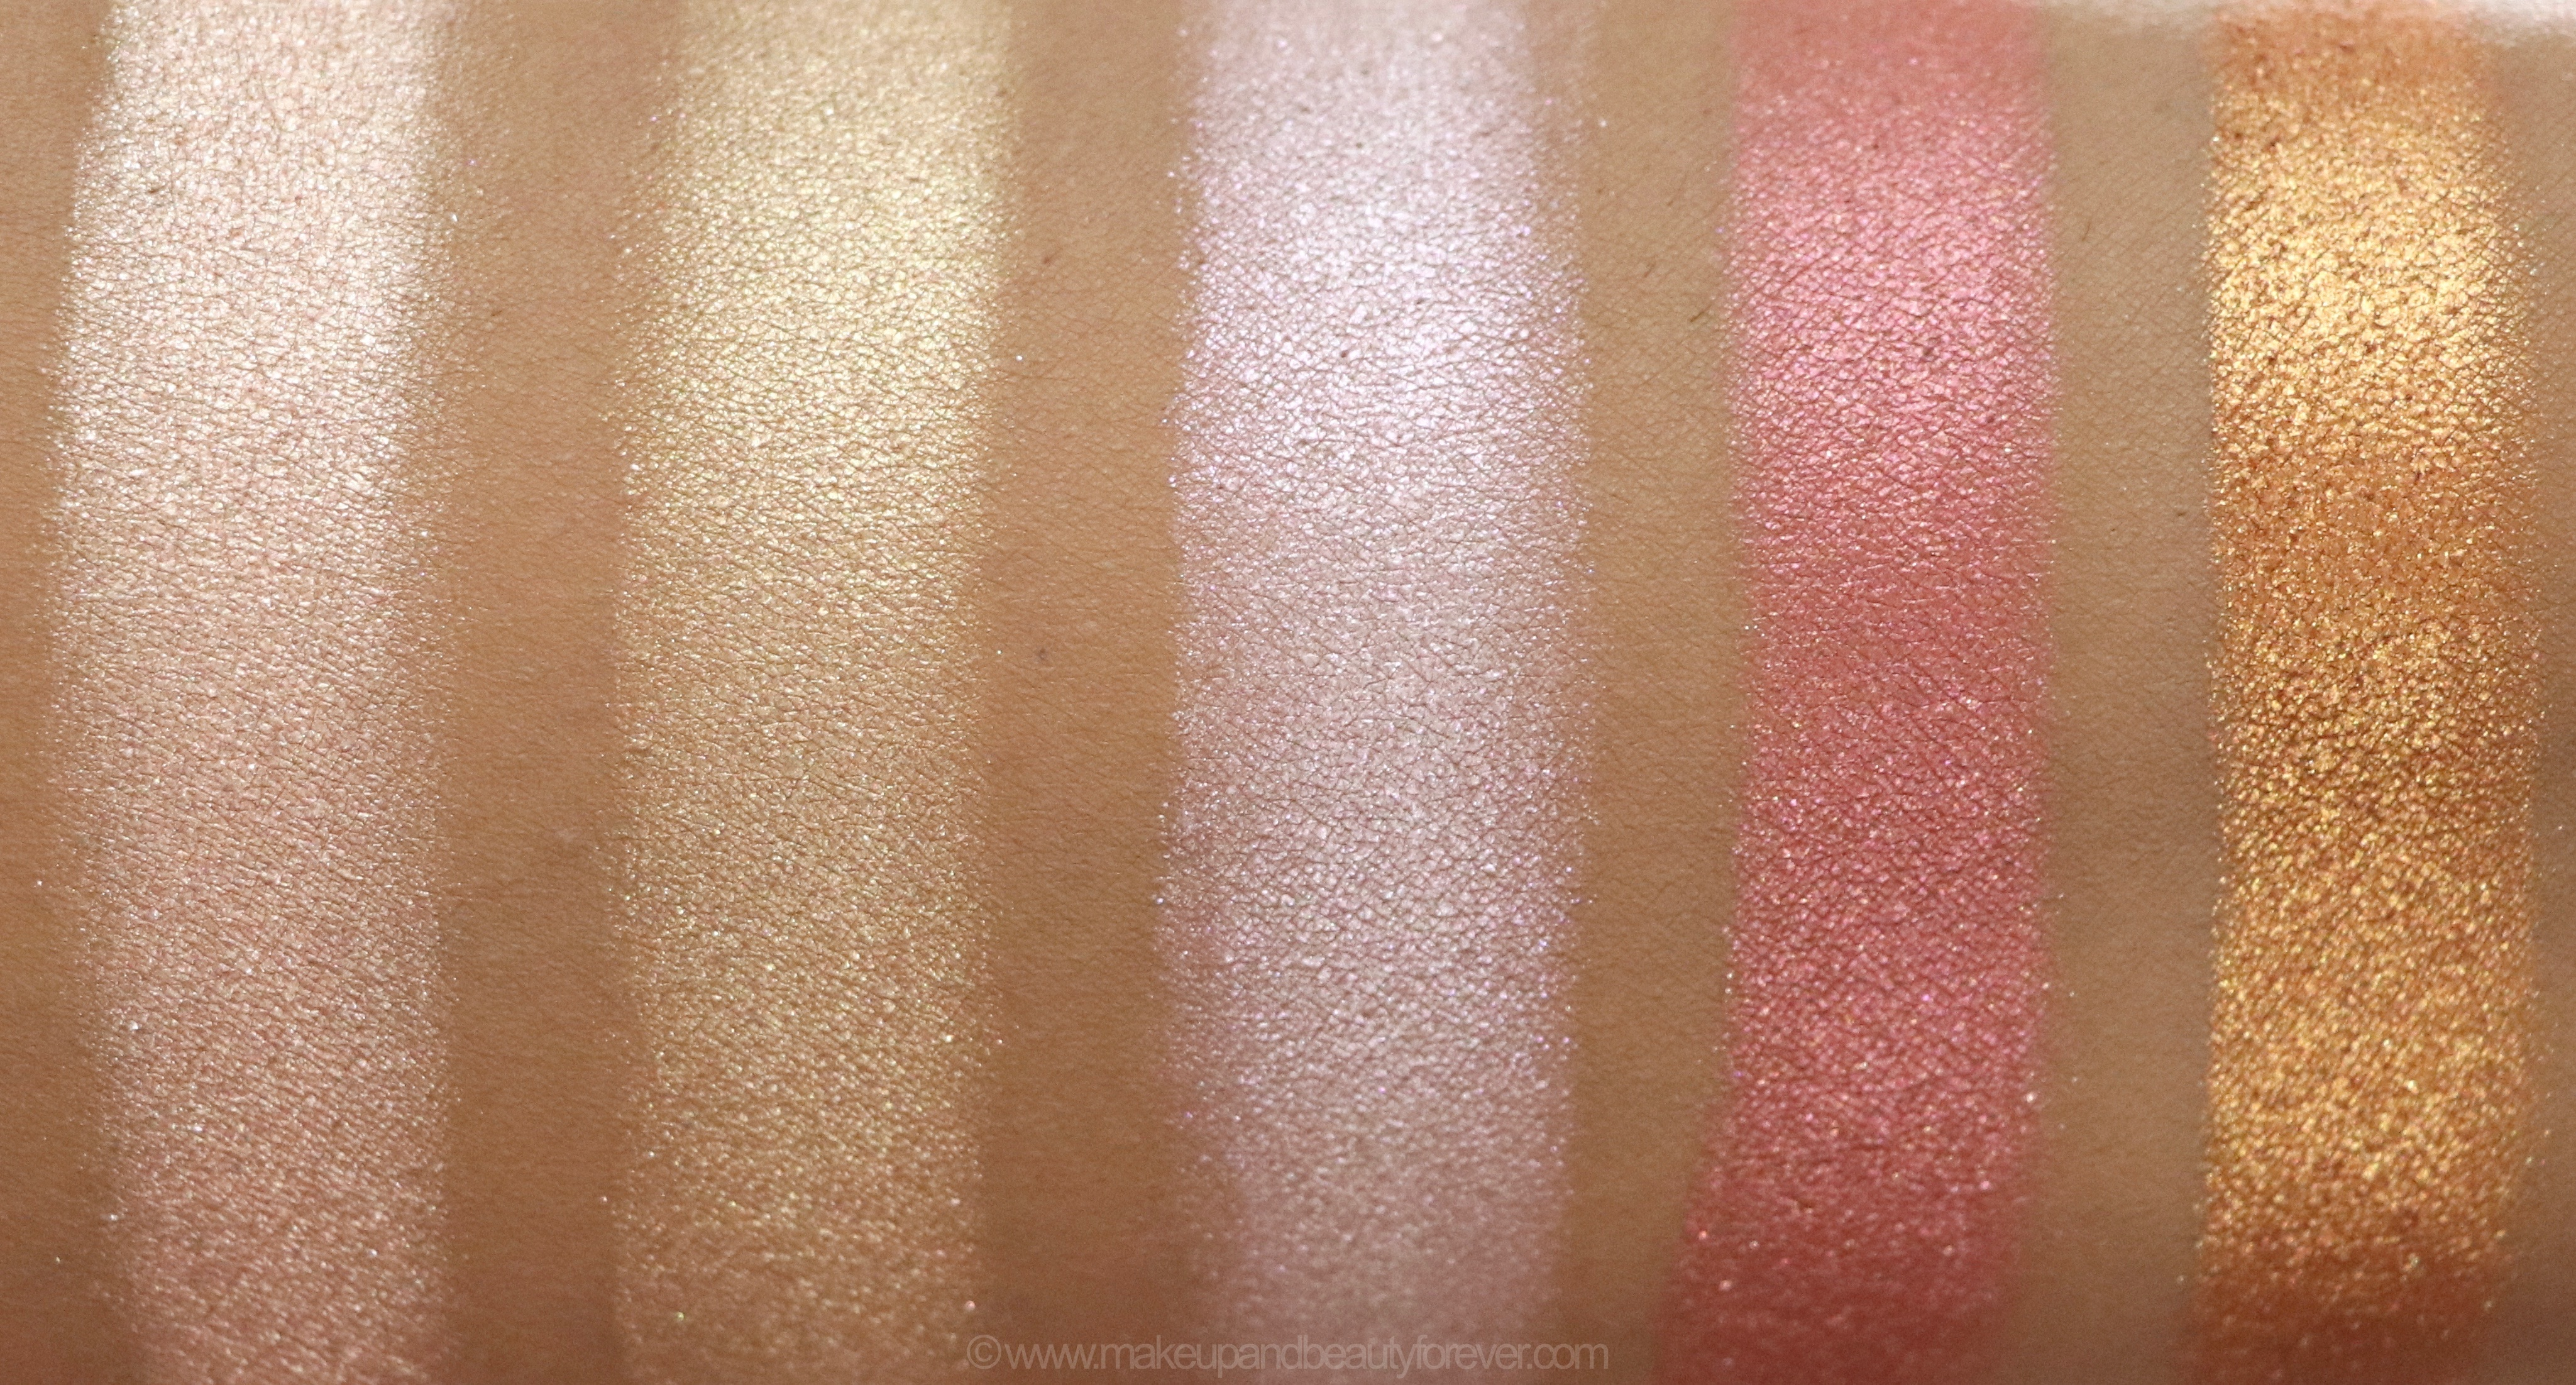 Morphe Pressed Pigments Swatches Powder Room, Conceited ...